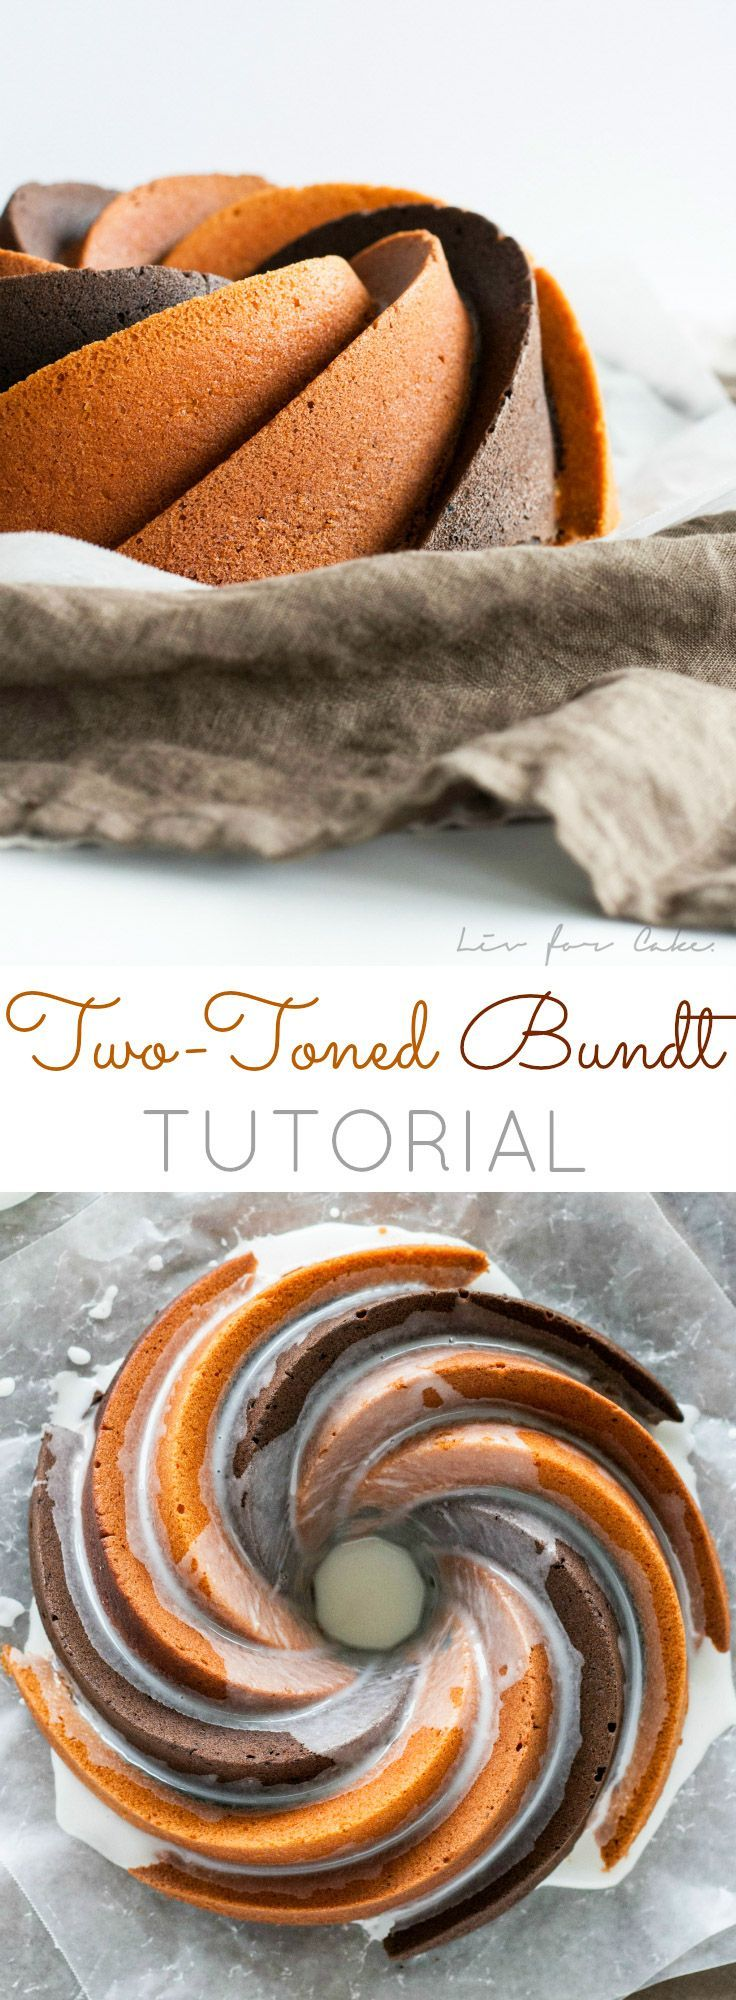 Learn how to do two-toned spirals in the Heritage bundt pan with this detailed tutorial. | livforcake.com